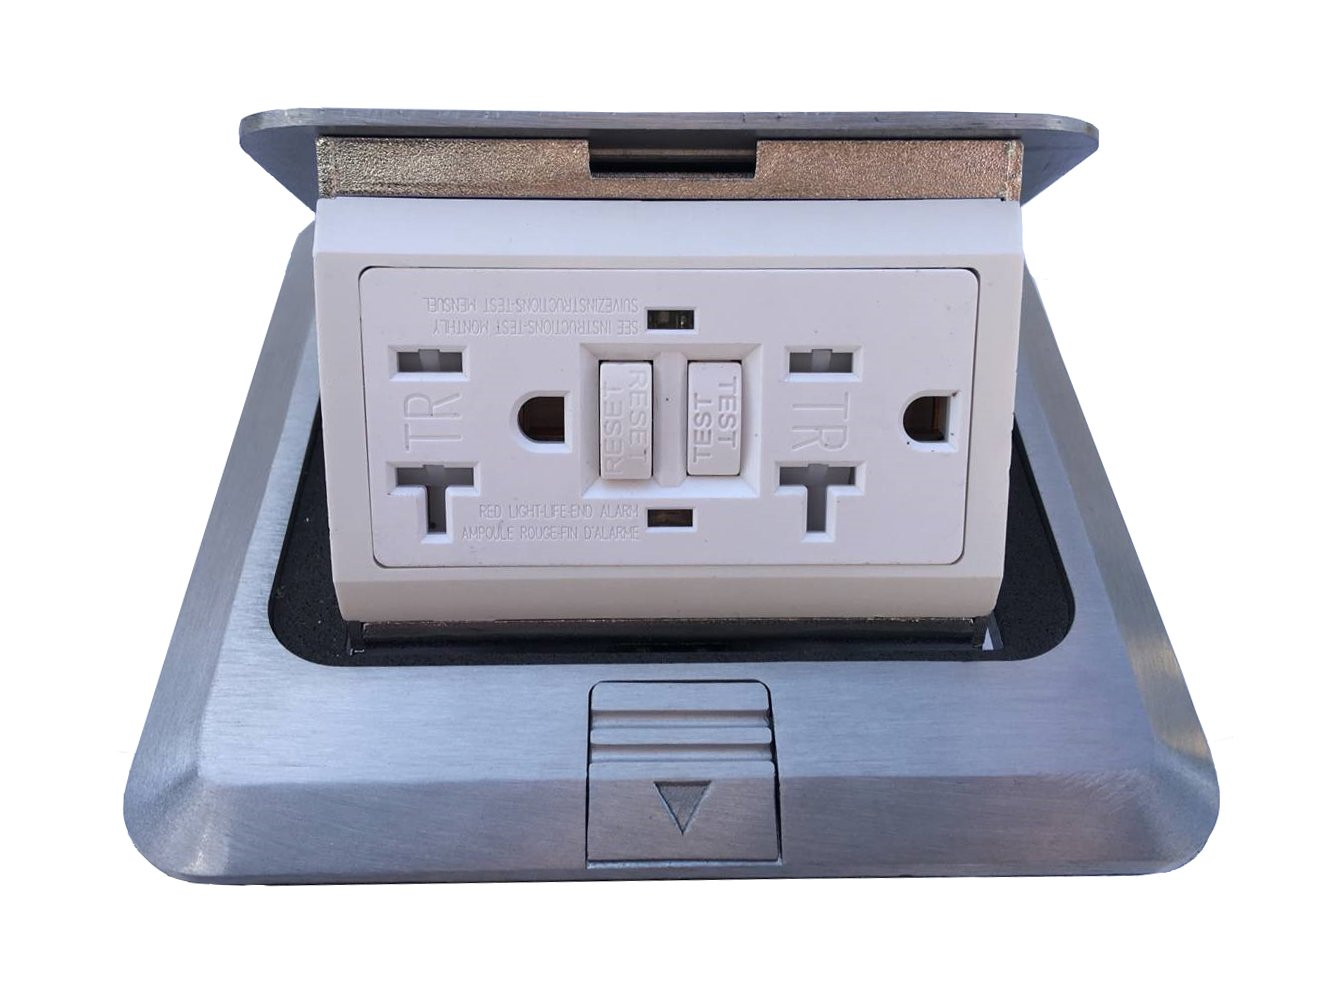 Pop Up Floor Box Countertop Box w/20A GFI Receptacle Electric Outlet - Brushed-Stainless Finish by Lhfacc